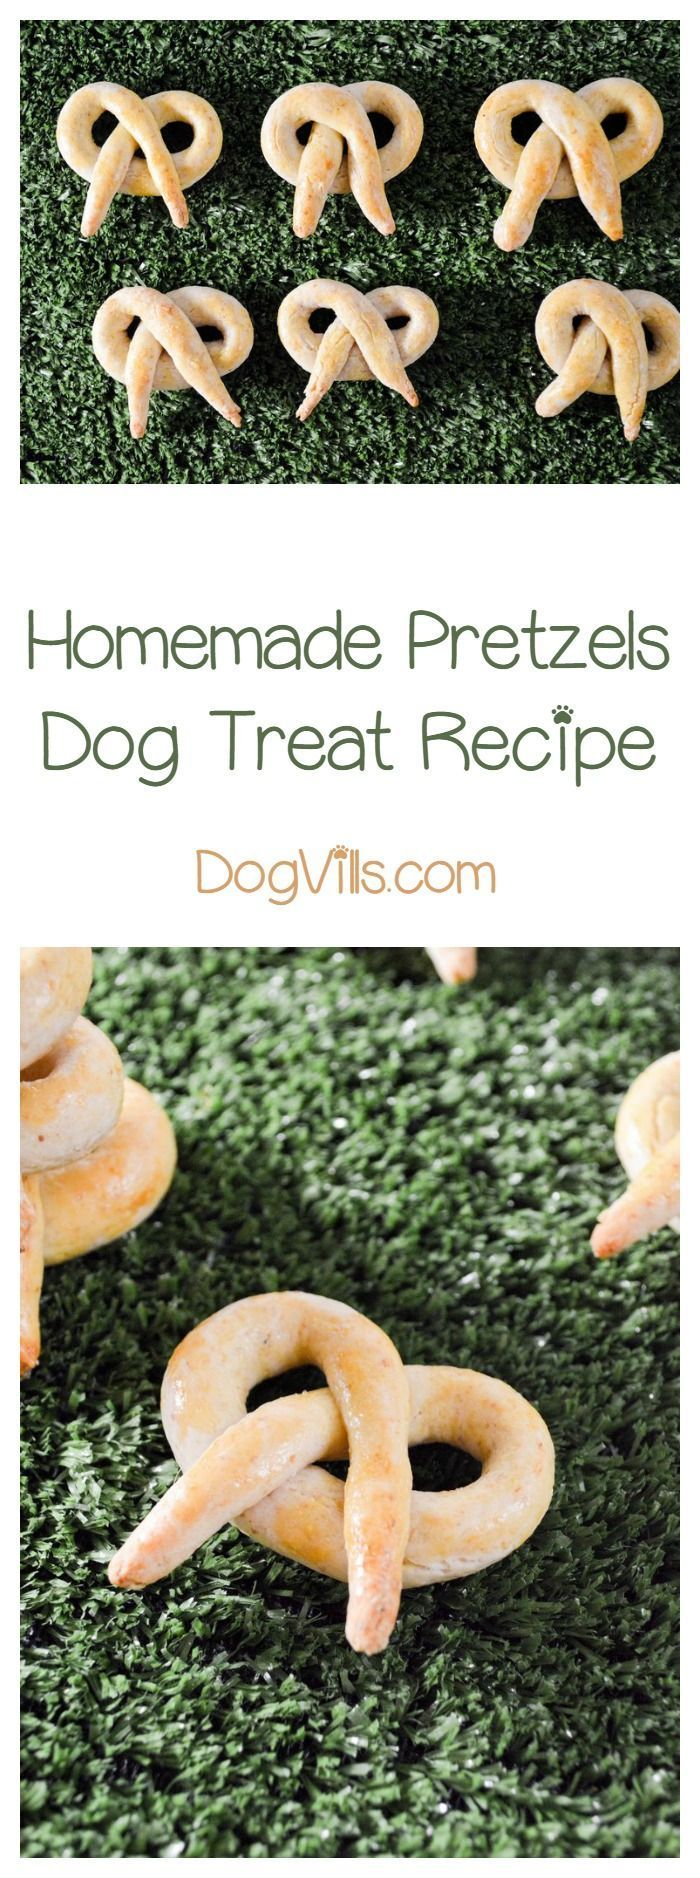 Soft Pretzel Dog Treat Your pooch is going to love this delicious homemade pretzels dog treat recipe! It's just like your favorite pretzel, but with a bit of a twist! Pun intended!Your pooch is going to love this delicious homemade pretzels dog treat recipe! It's just like your favorite pretzel, but with a bit of a twist! Pun intended!